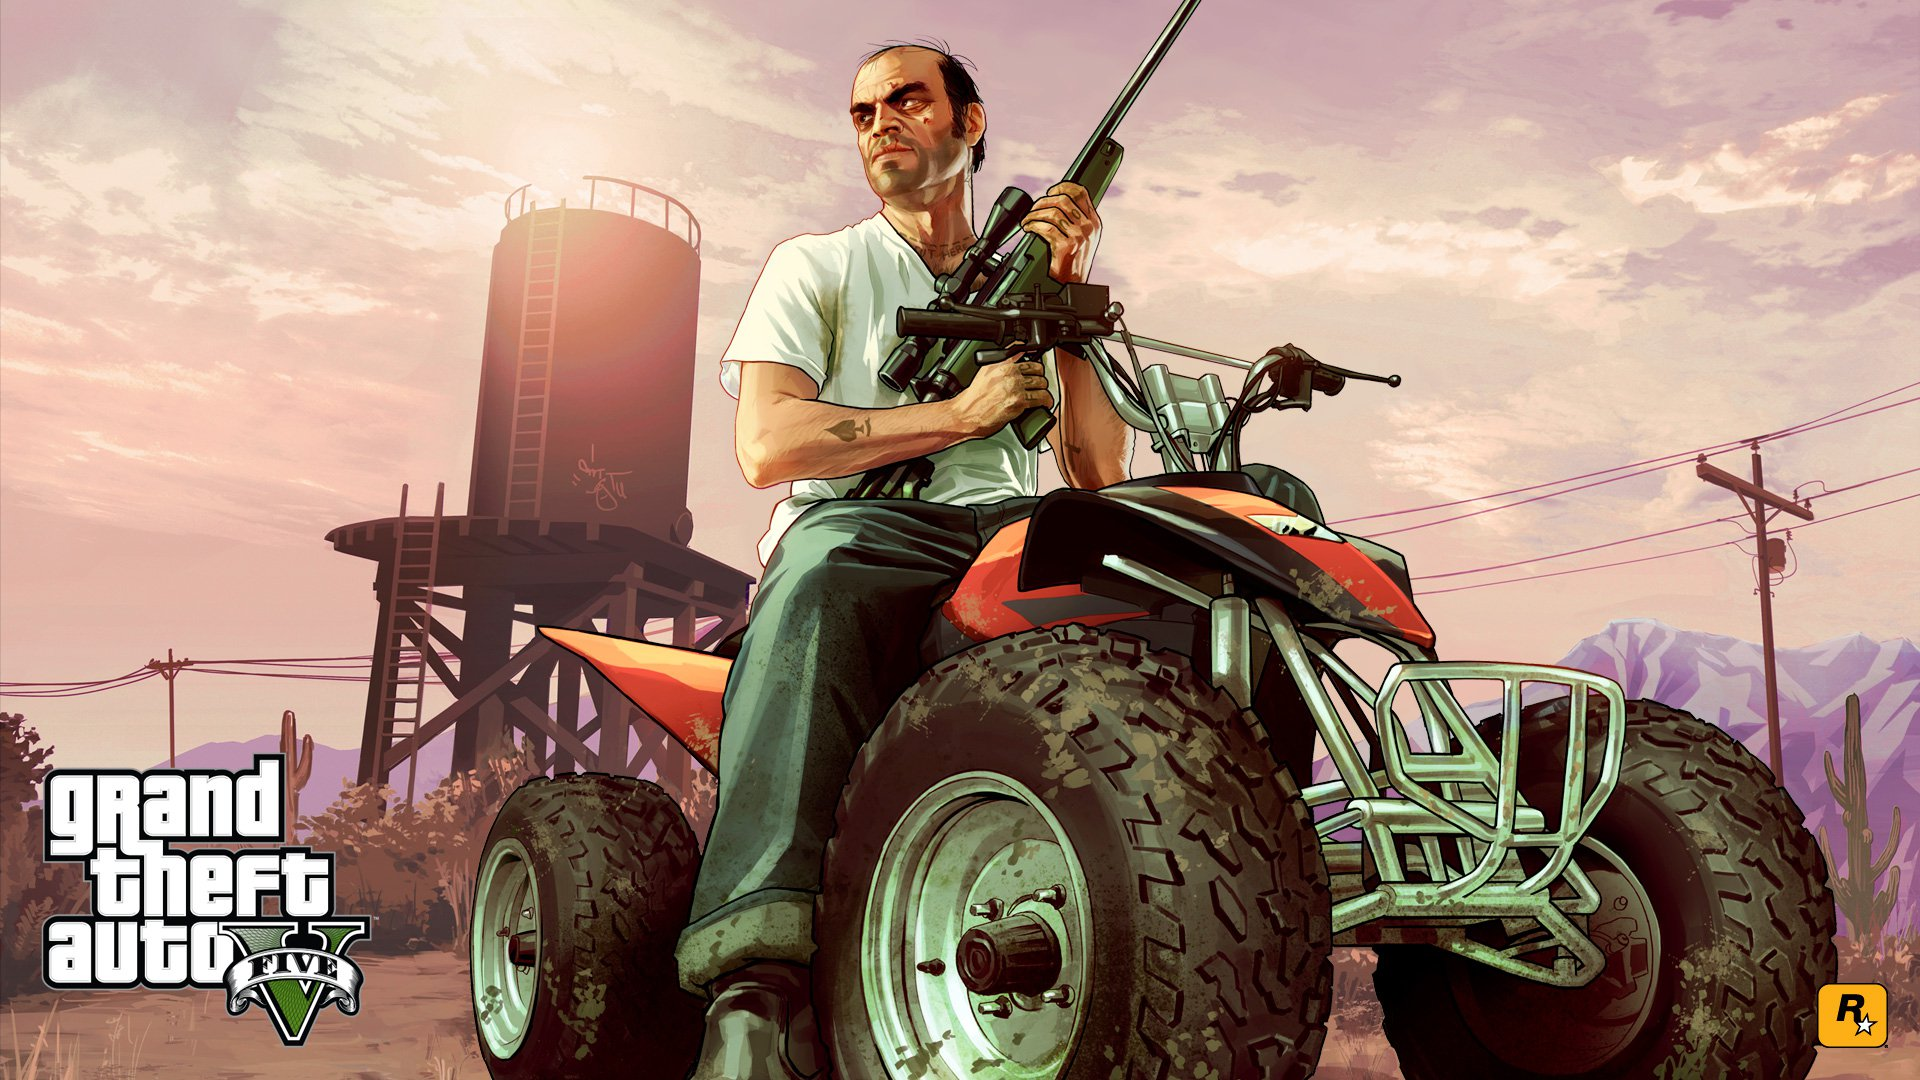 GTA 5 Cheats Offers Weapon Upgrades, Invincibility, And More